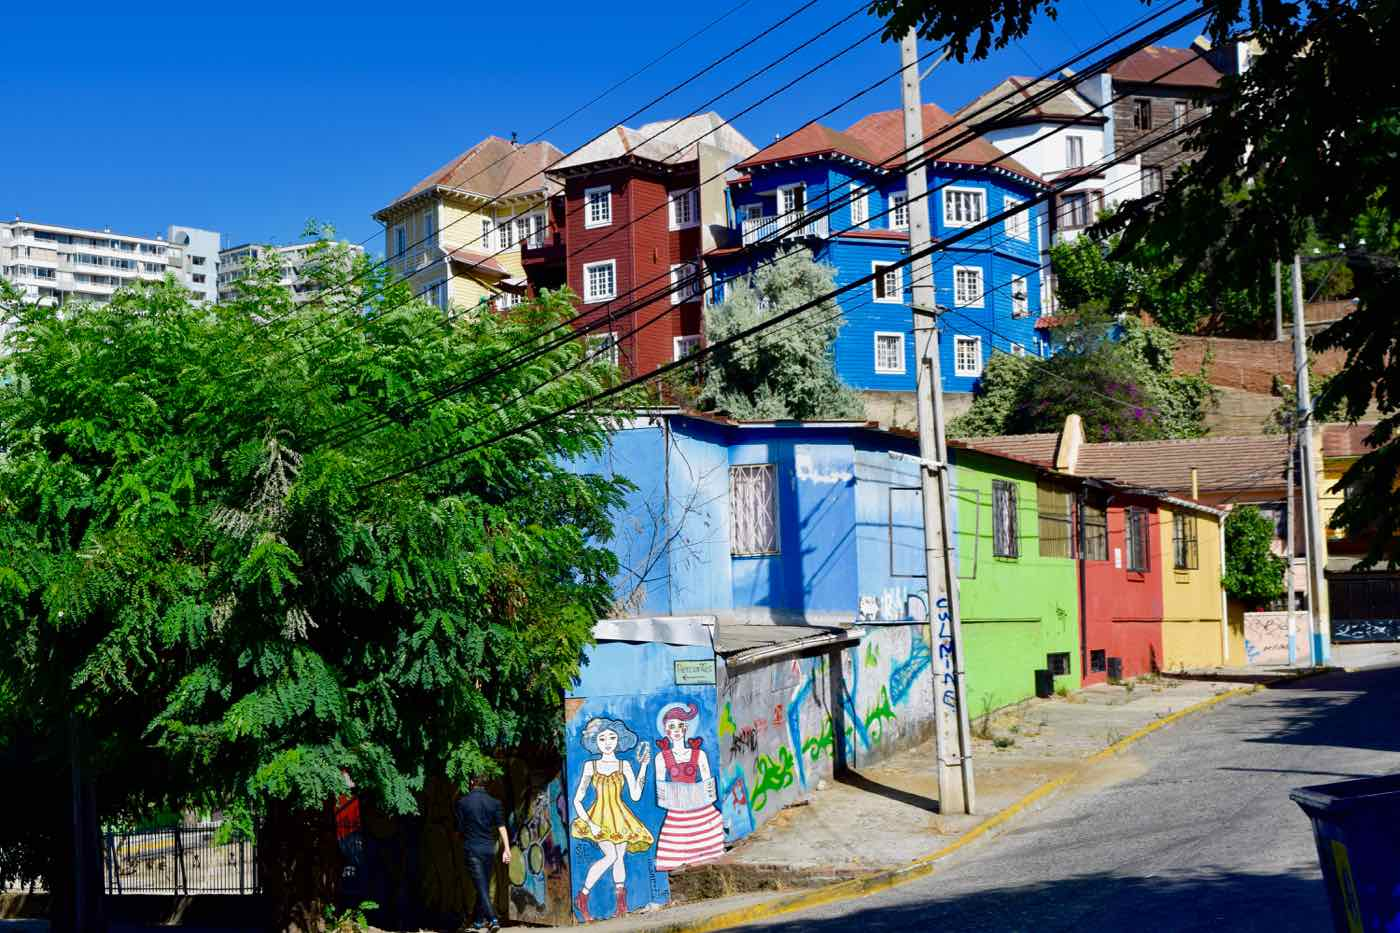 Valparaiso Chile The City Of Incredible Street Art - Chilean beach house ultimate holiday getaway